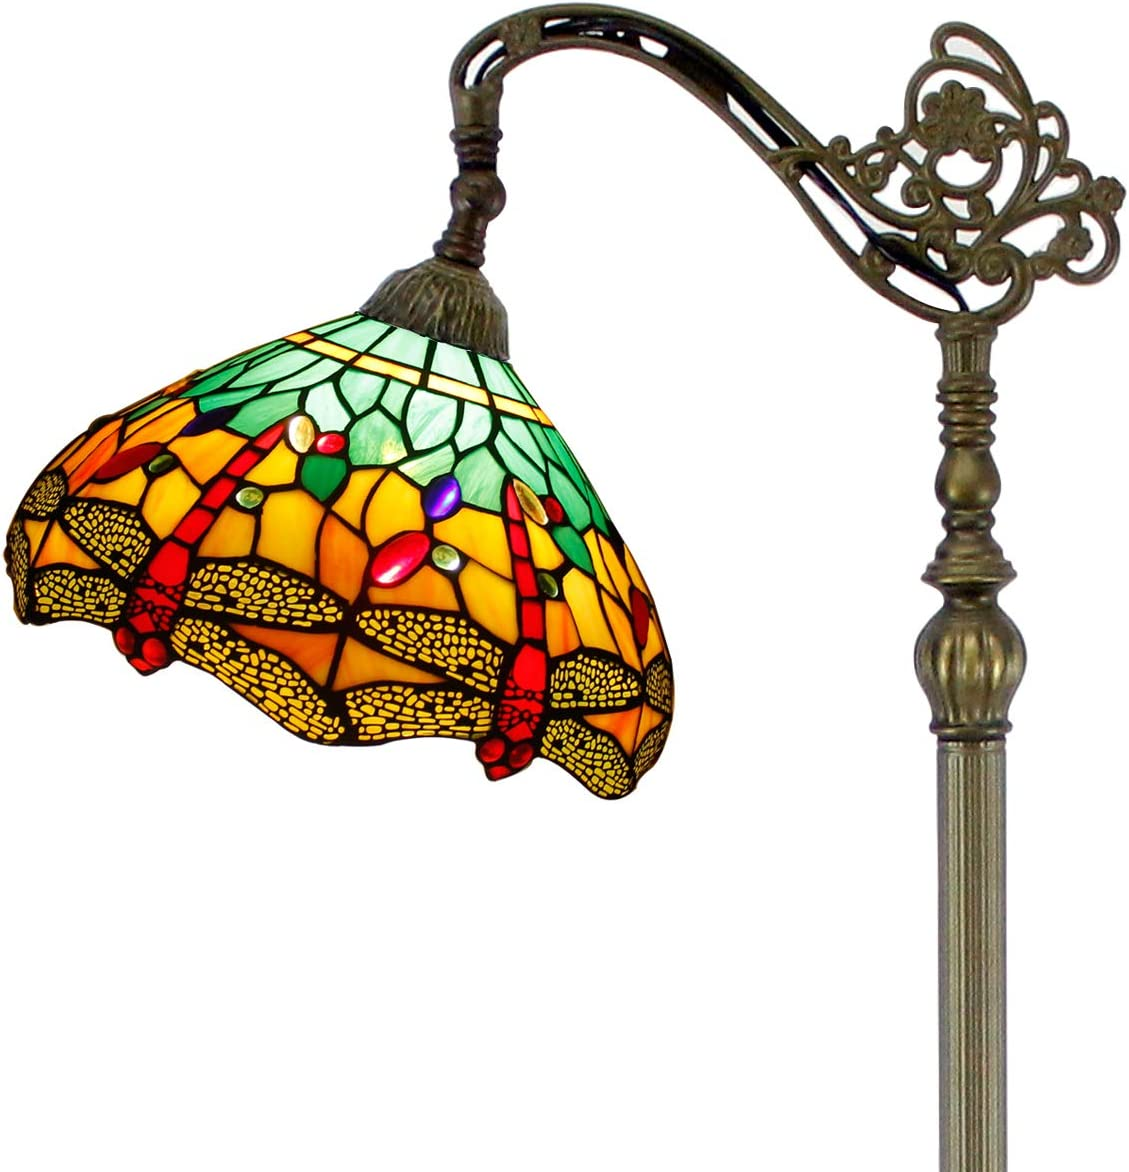 Tiffany Style Reading Floor Lamp Stained Glass Green Yellow Dragonfly Lampshade in 64 Inch Tall Antique Arched Base for Girlfriend Bedroom Living Room Lighting Table S009G WERFACTORY